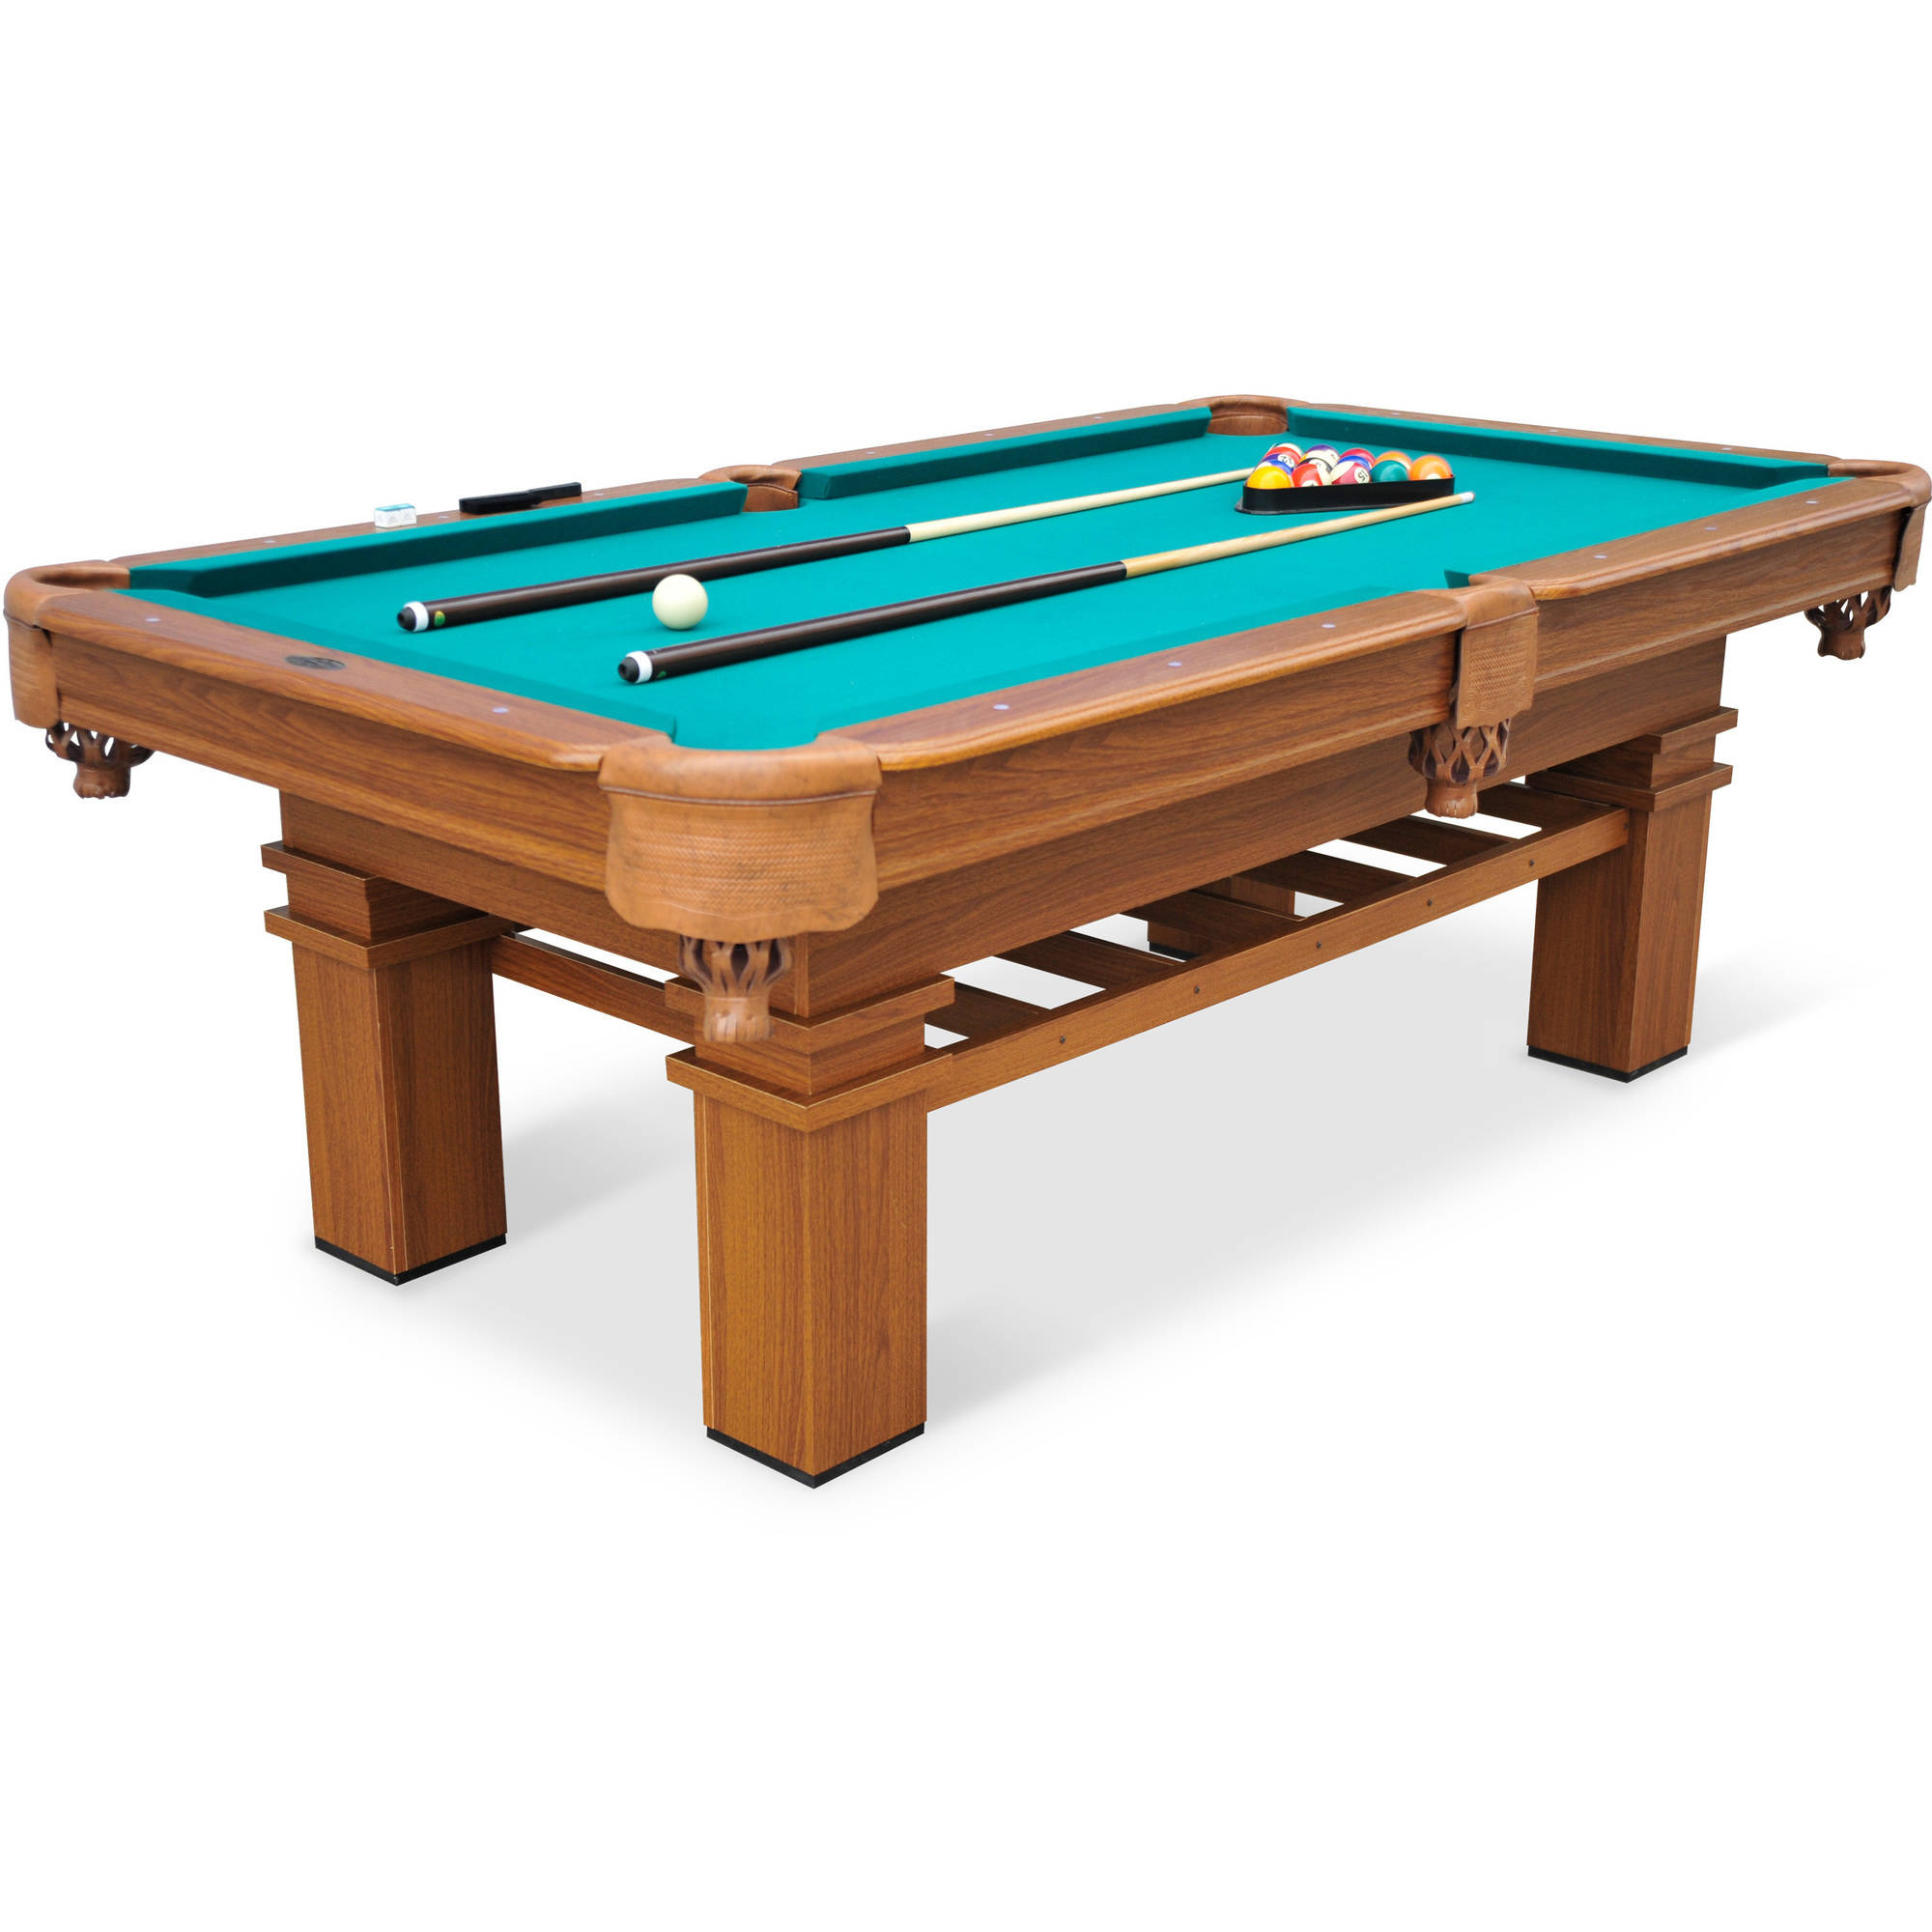 EastPoint Sports 87-inch Sinclair Billiard Pool Table with Ping Pong Top by Eastpoint Sports